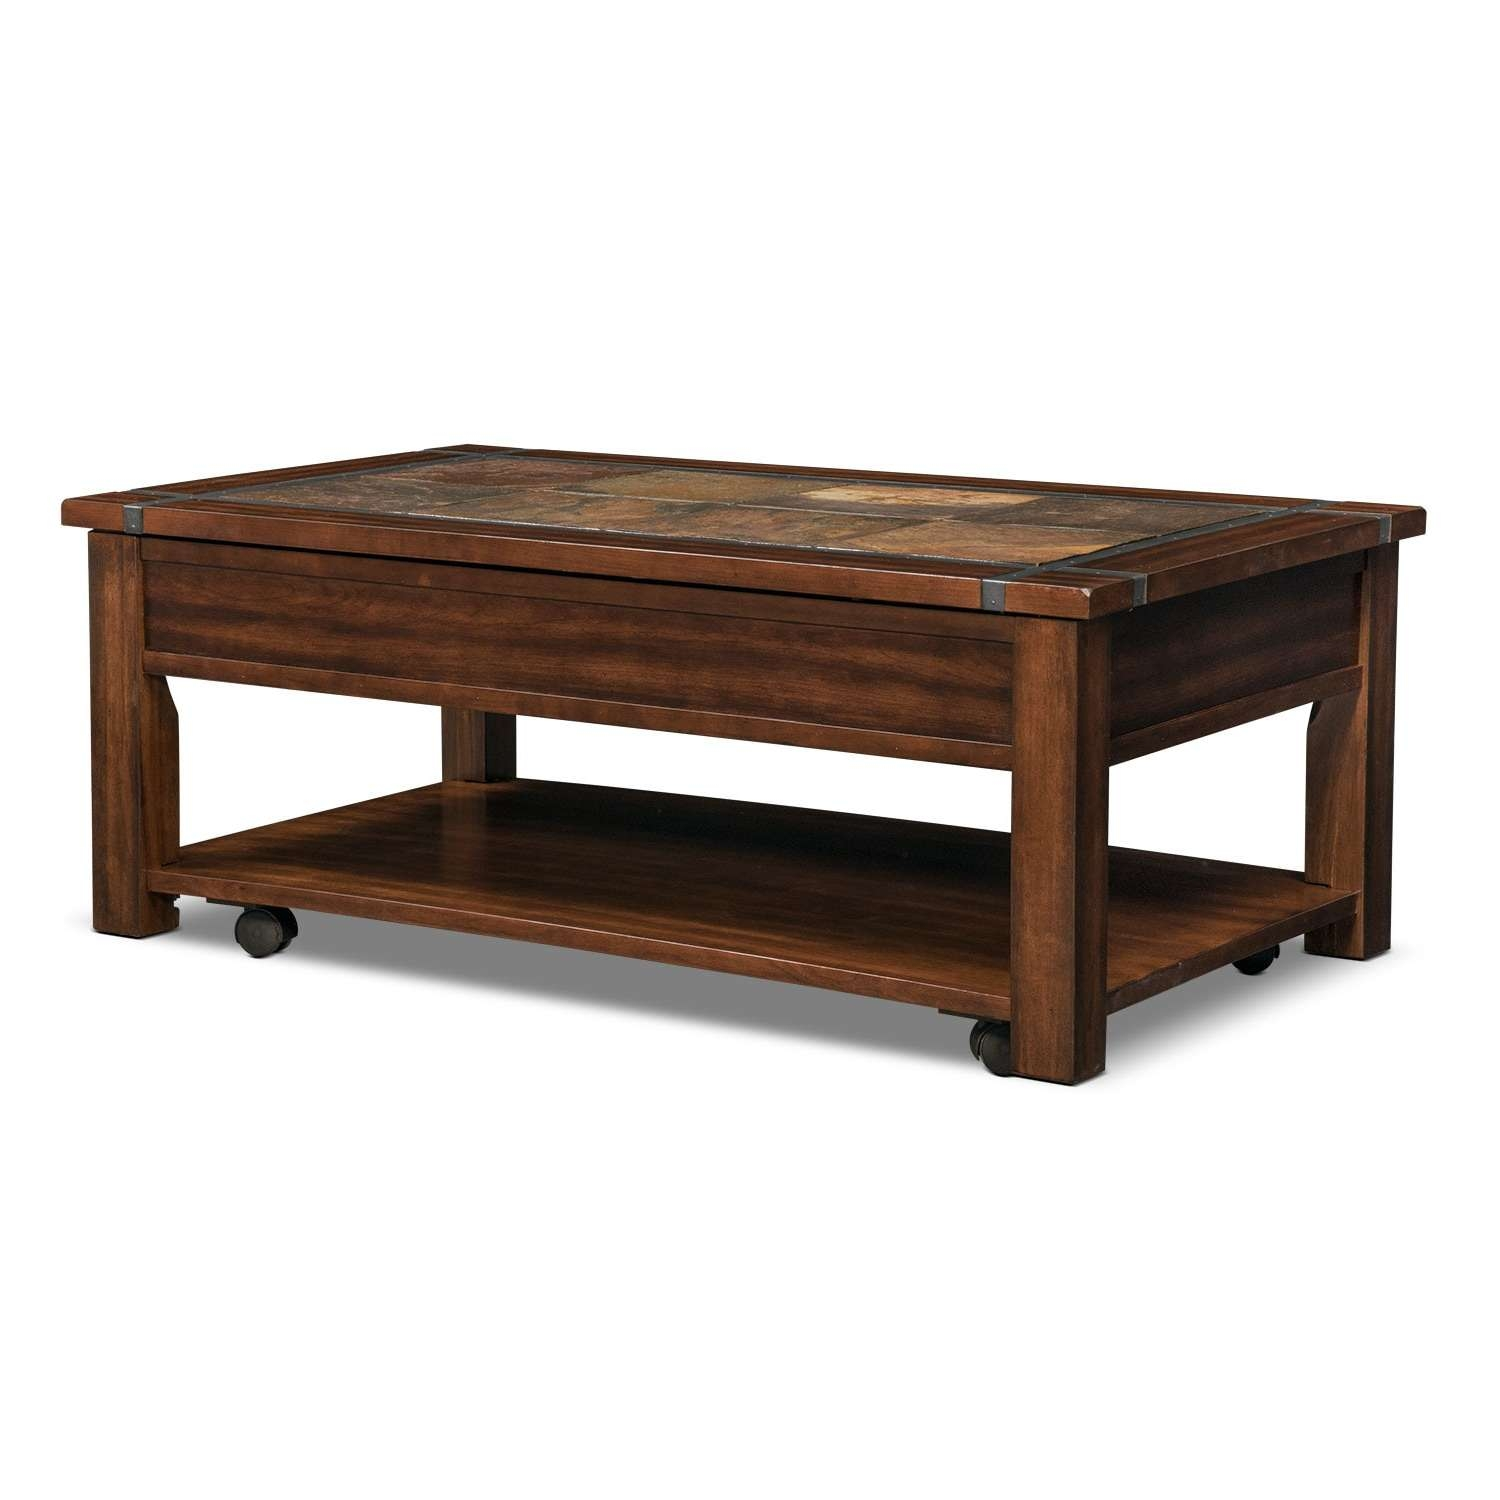 2018 Round Slate Top Coffee Tables For Coffee Tables (View 1 of 20)